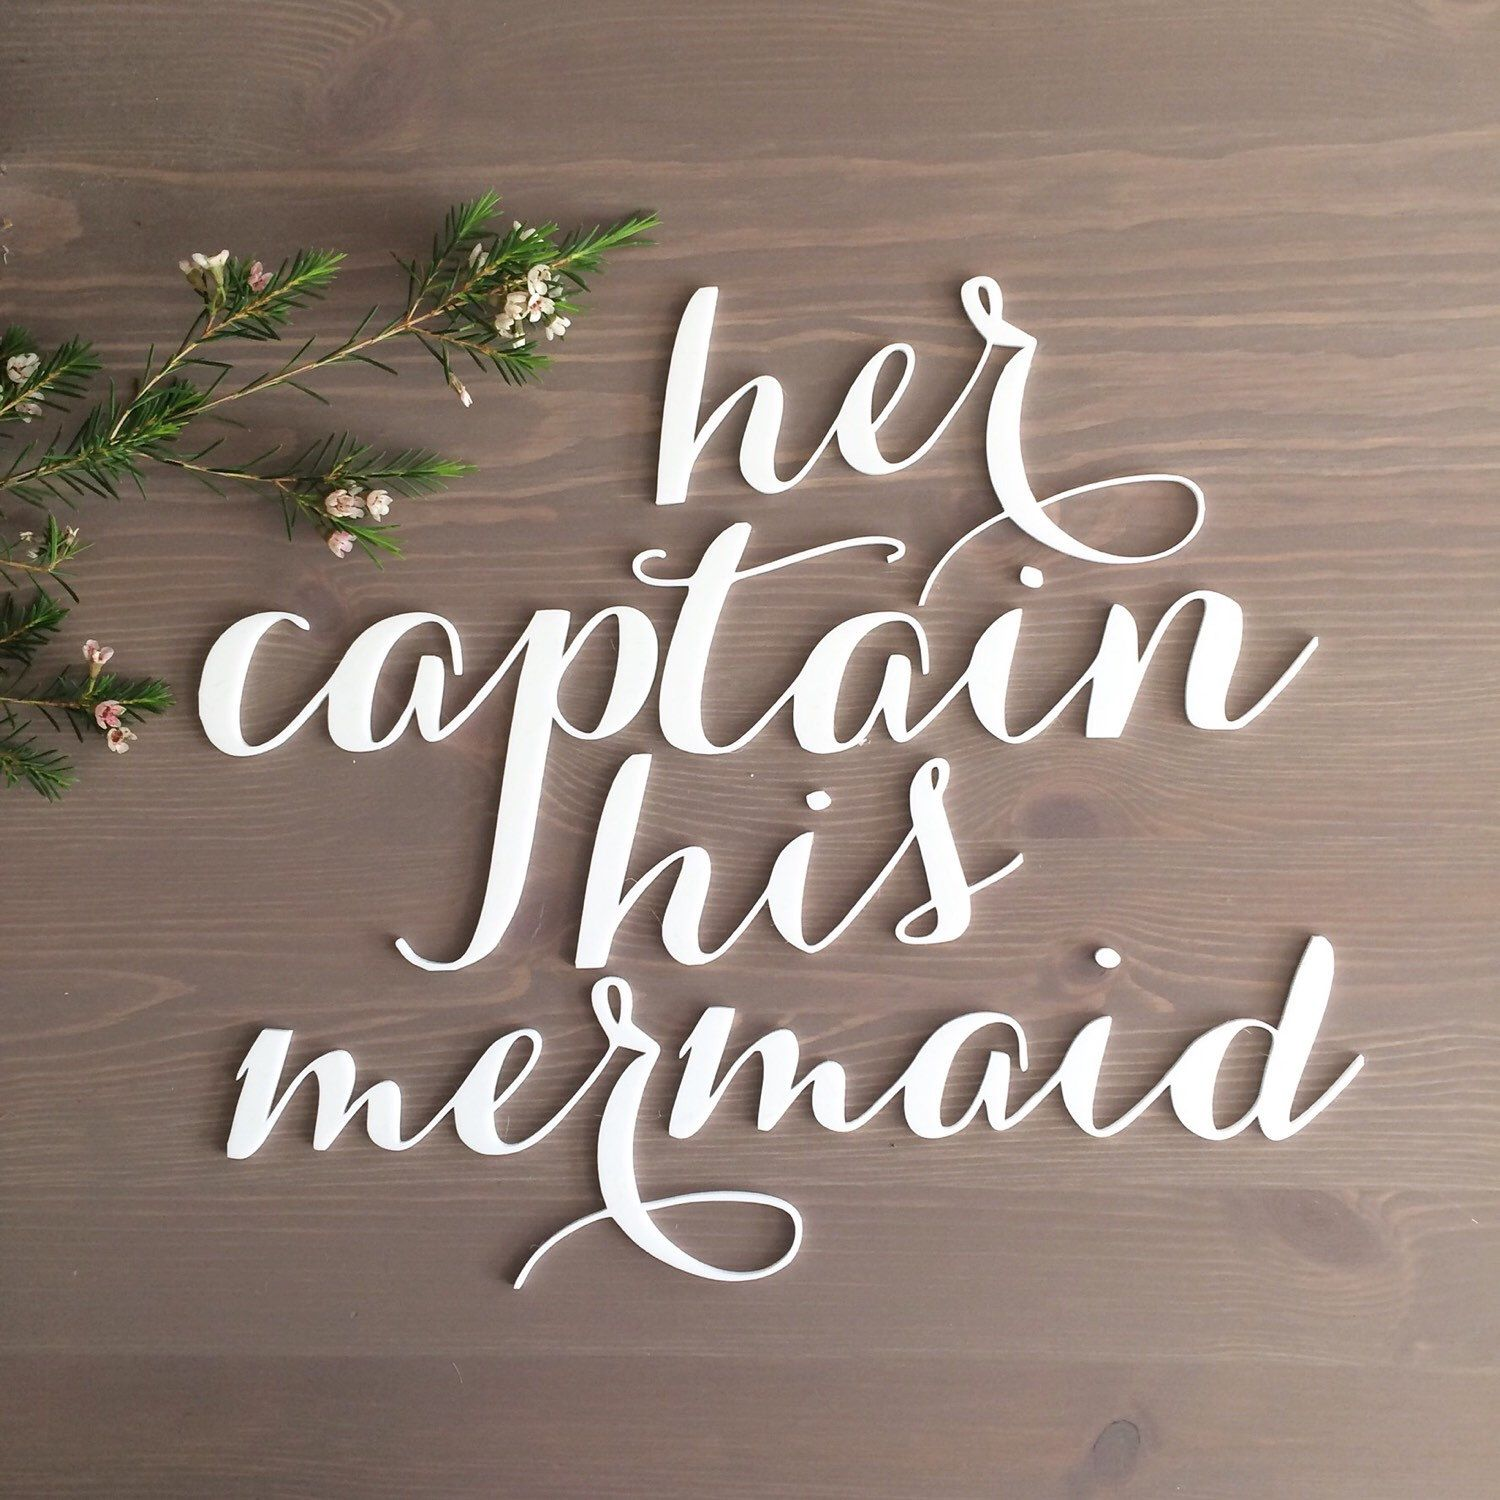 Her Captain His Mermaid Signs / Beach Wedding / Chair Signs / Disney Wedding / Bride Groom Signs / Laser Cut Signs / Calligraphy Signs by SugarAndChicShop on Etsy https://www.etsy.com/listing/232125089/her-captain-his-mermaid-signs-beach